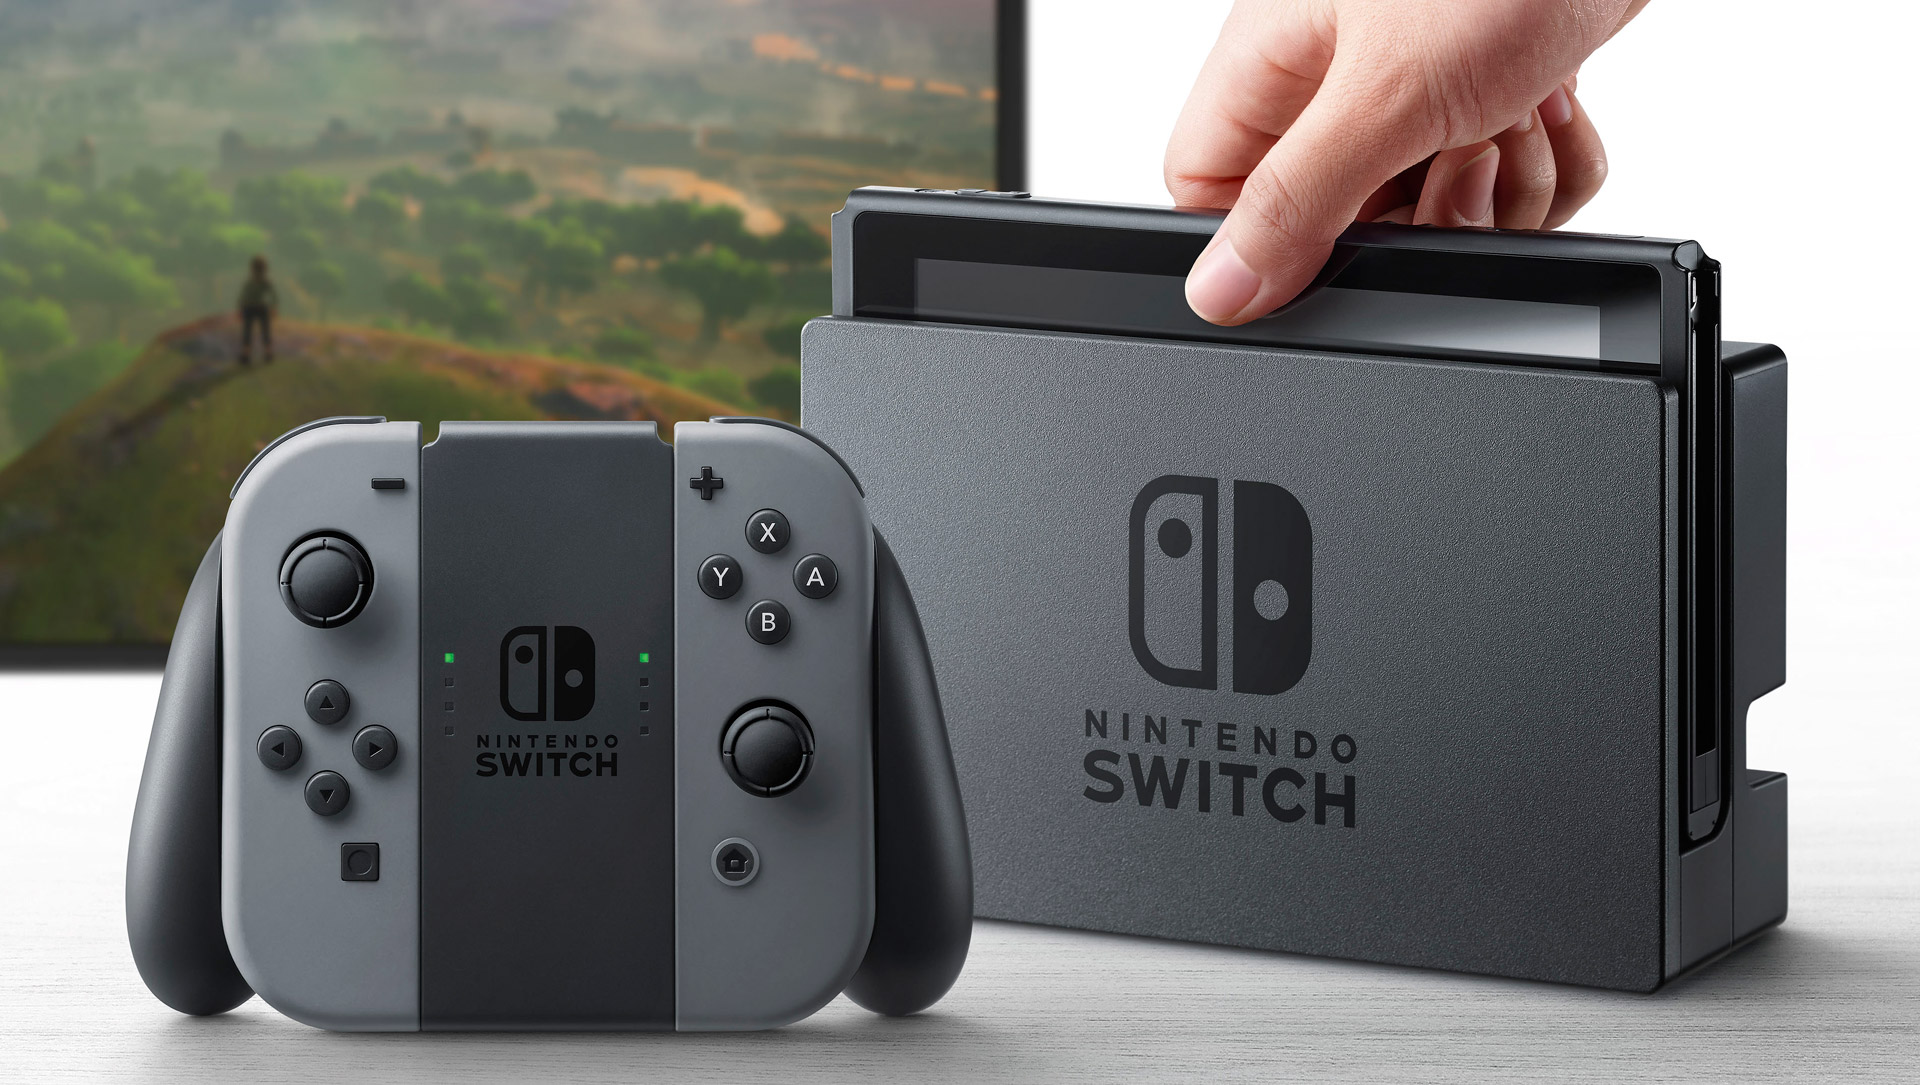 Nintendo Switch Projected to Sell 5 Million Units This Year